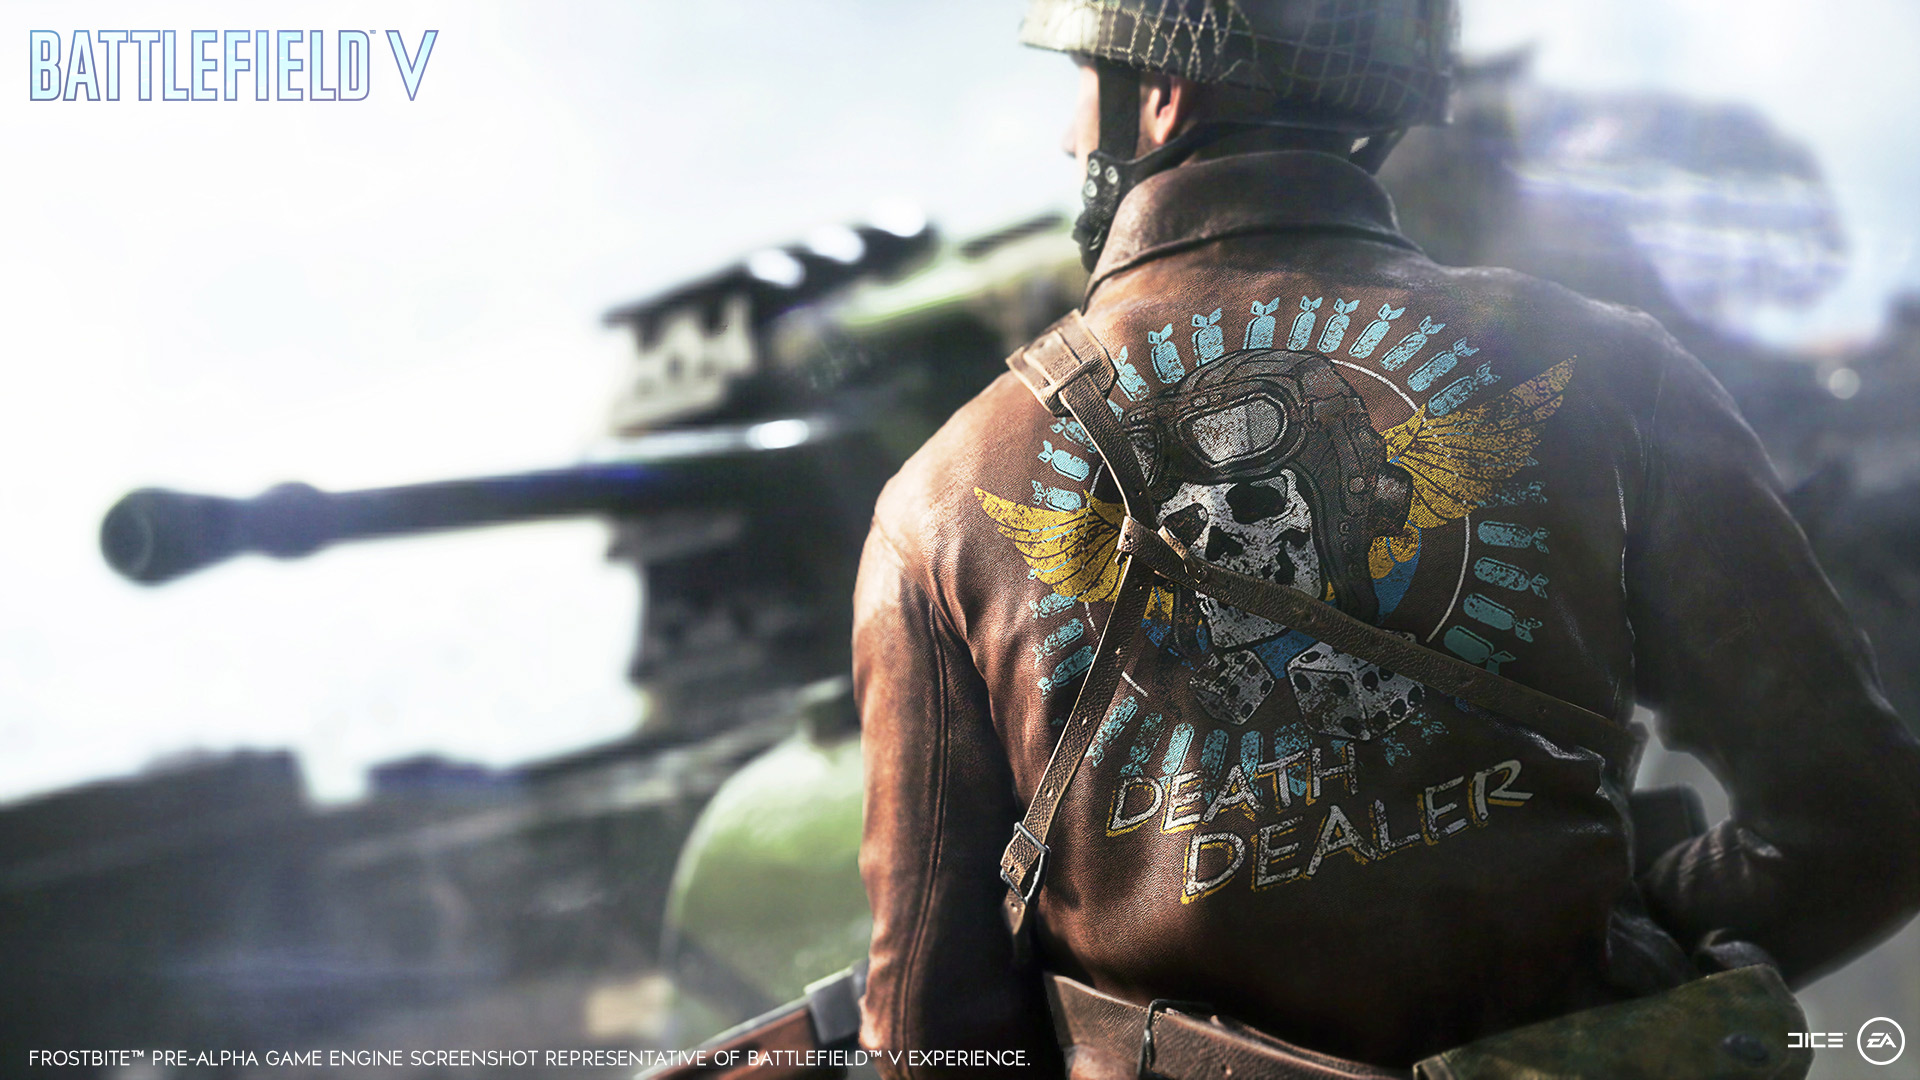 Battlefield V Reveal Trailer Blog Image 2